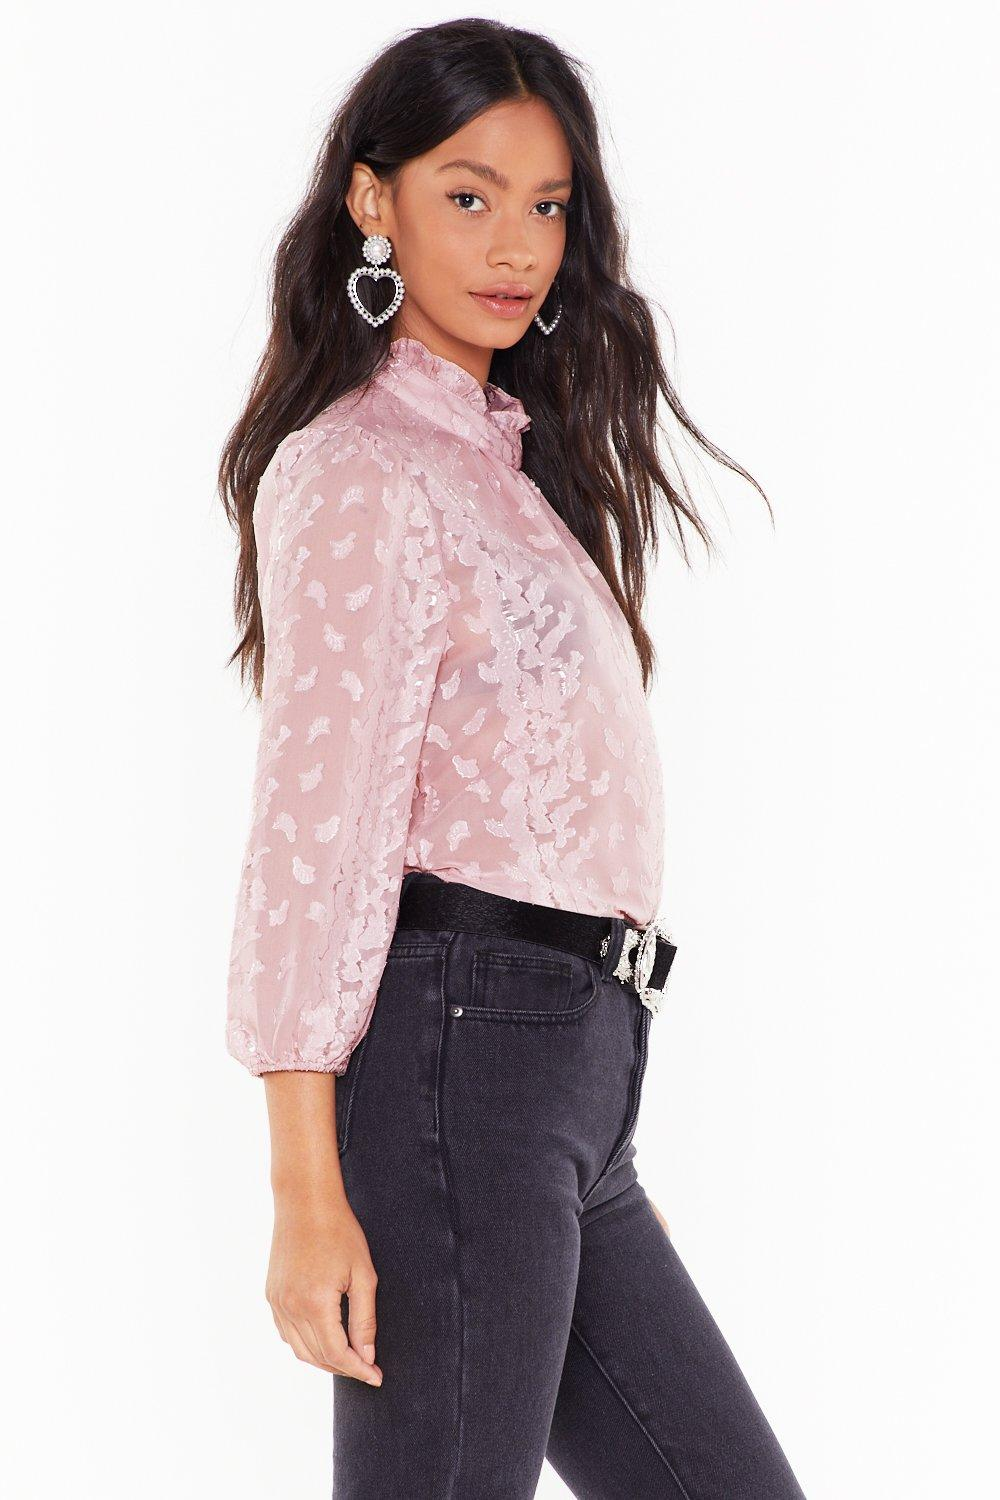 e6508204f1d8a Make It Sheer High Neck Blouse. Hover to zoom